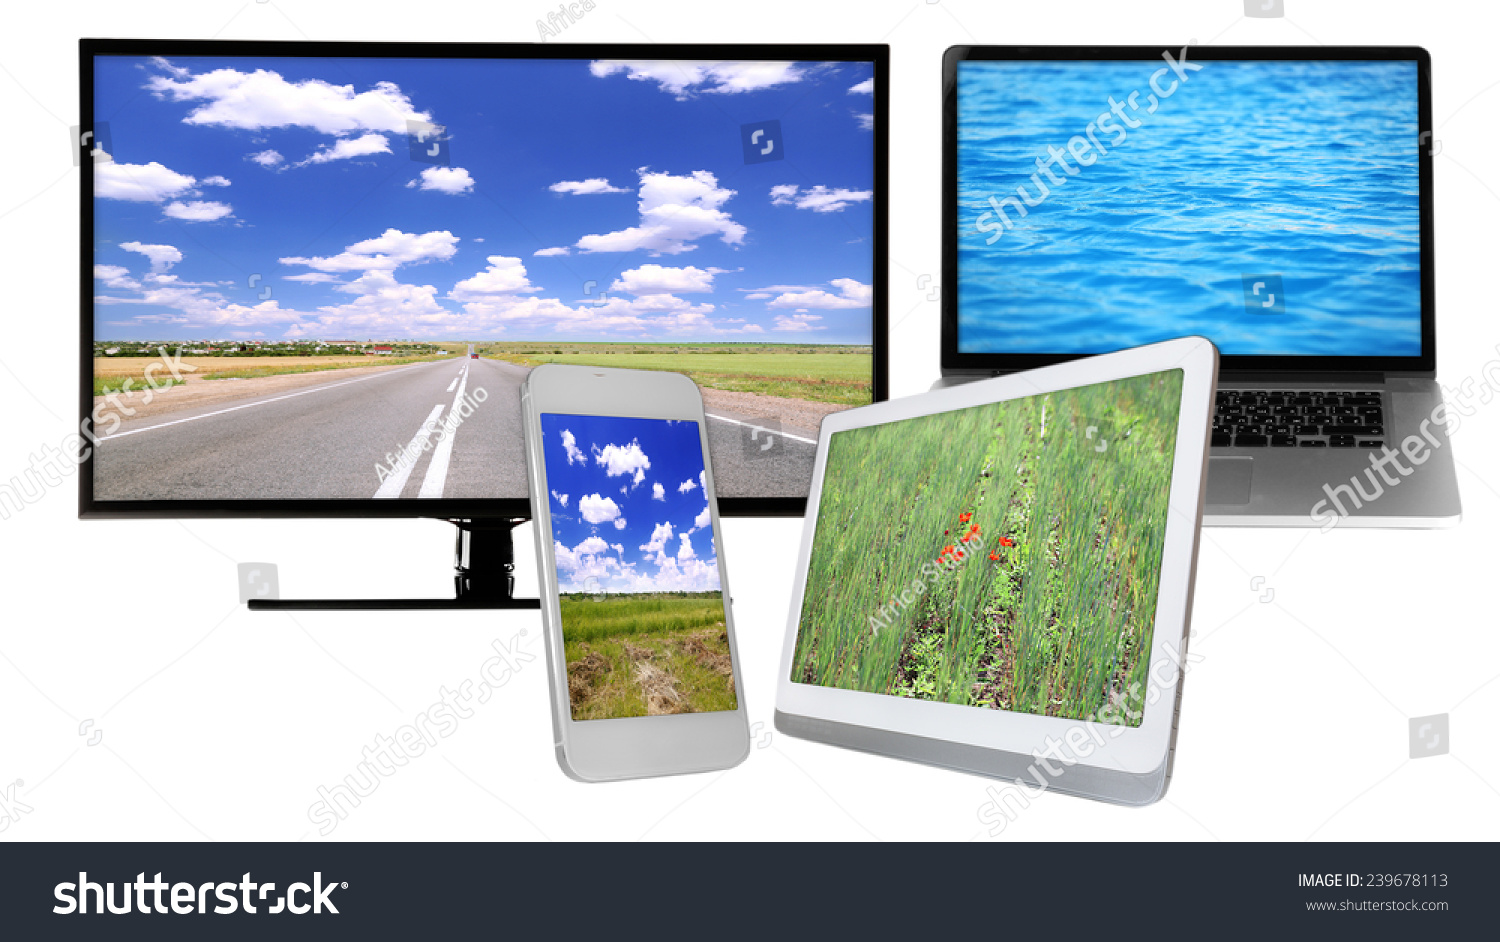 Monitor, laptop, tablet and phone with nature wallpaper on screens in collage isolated on